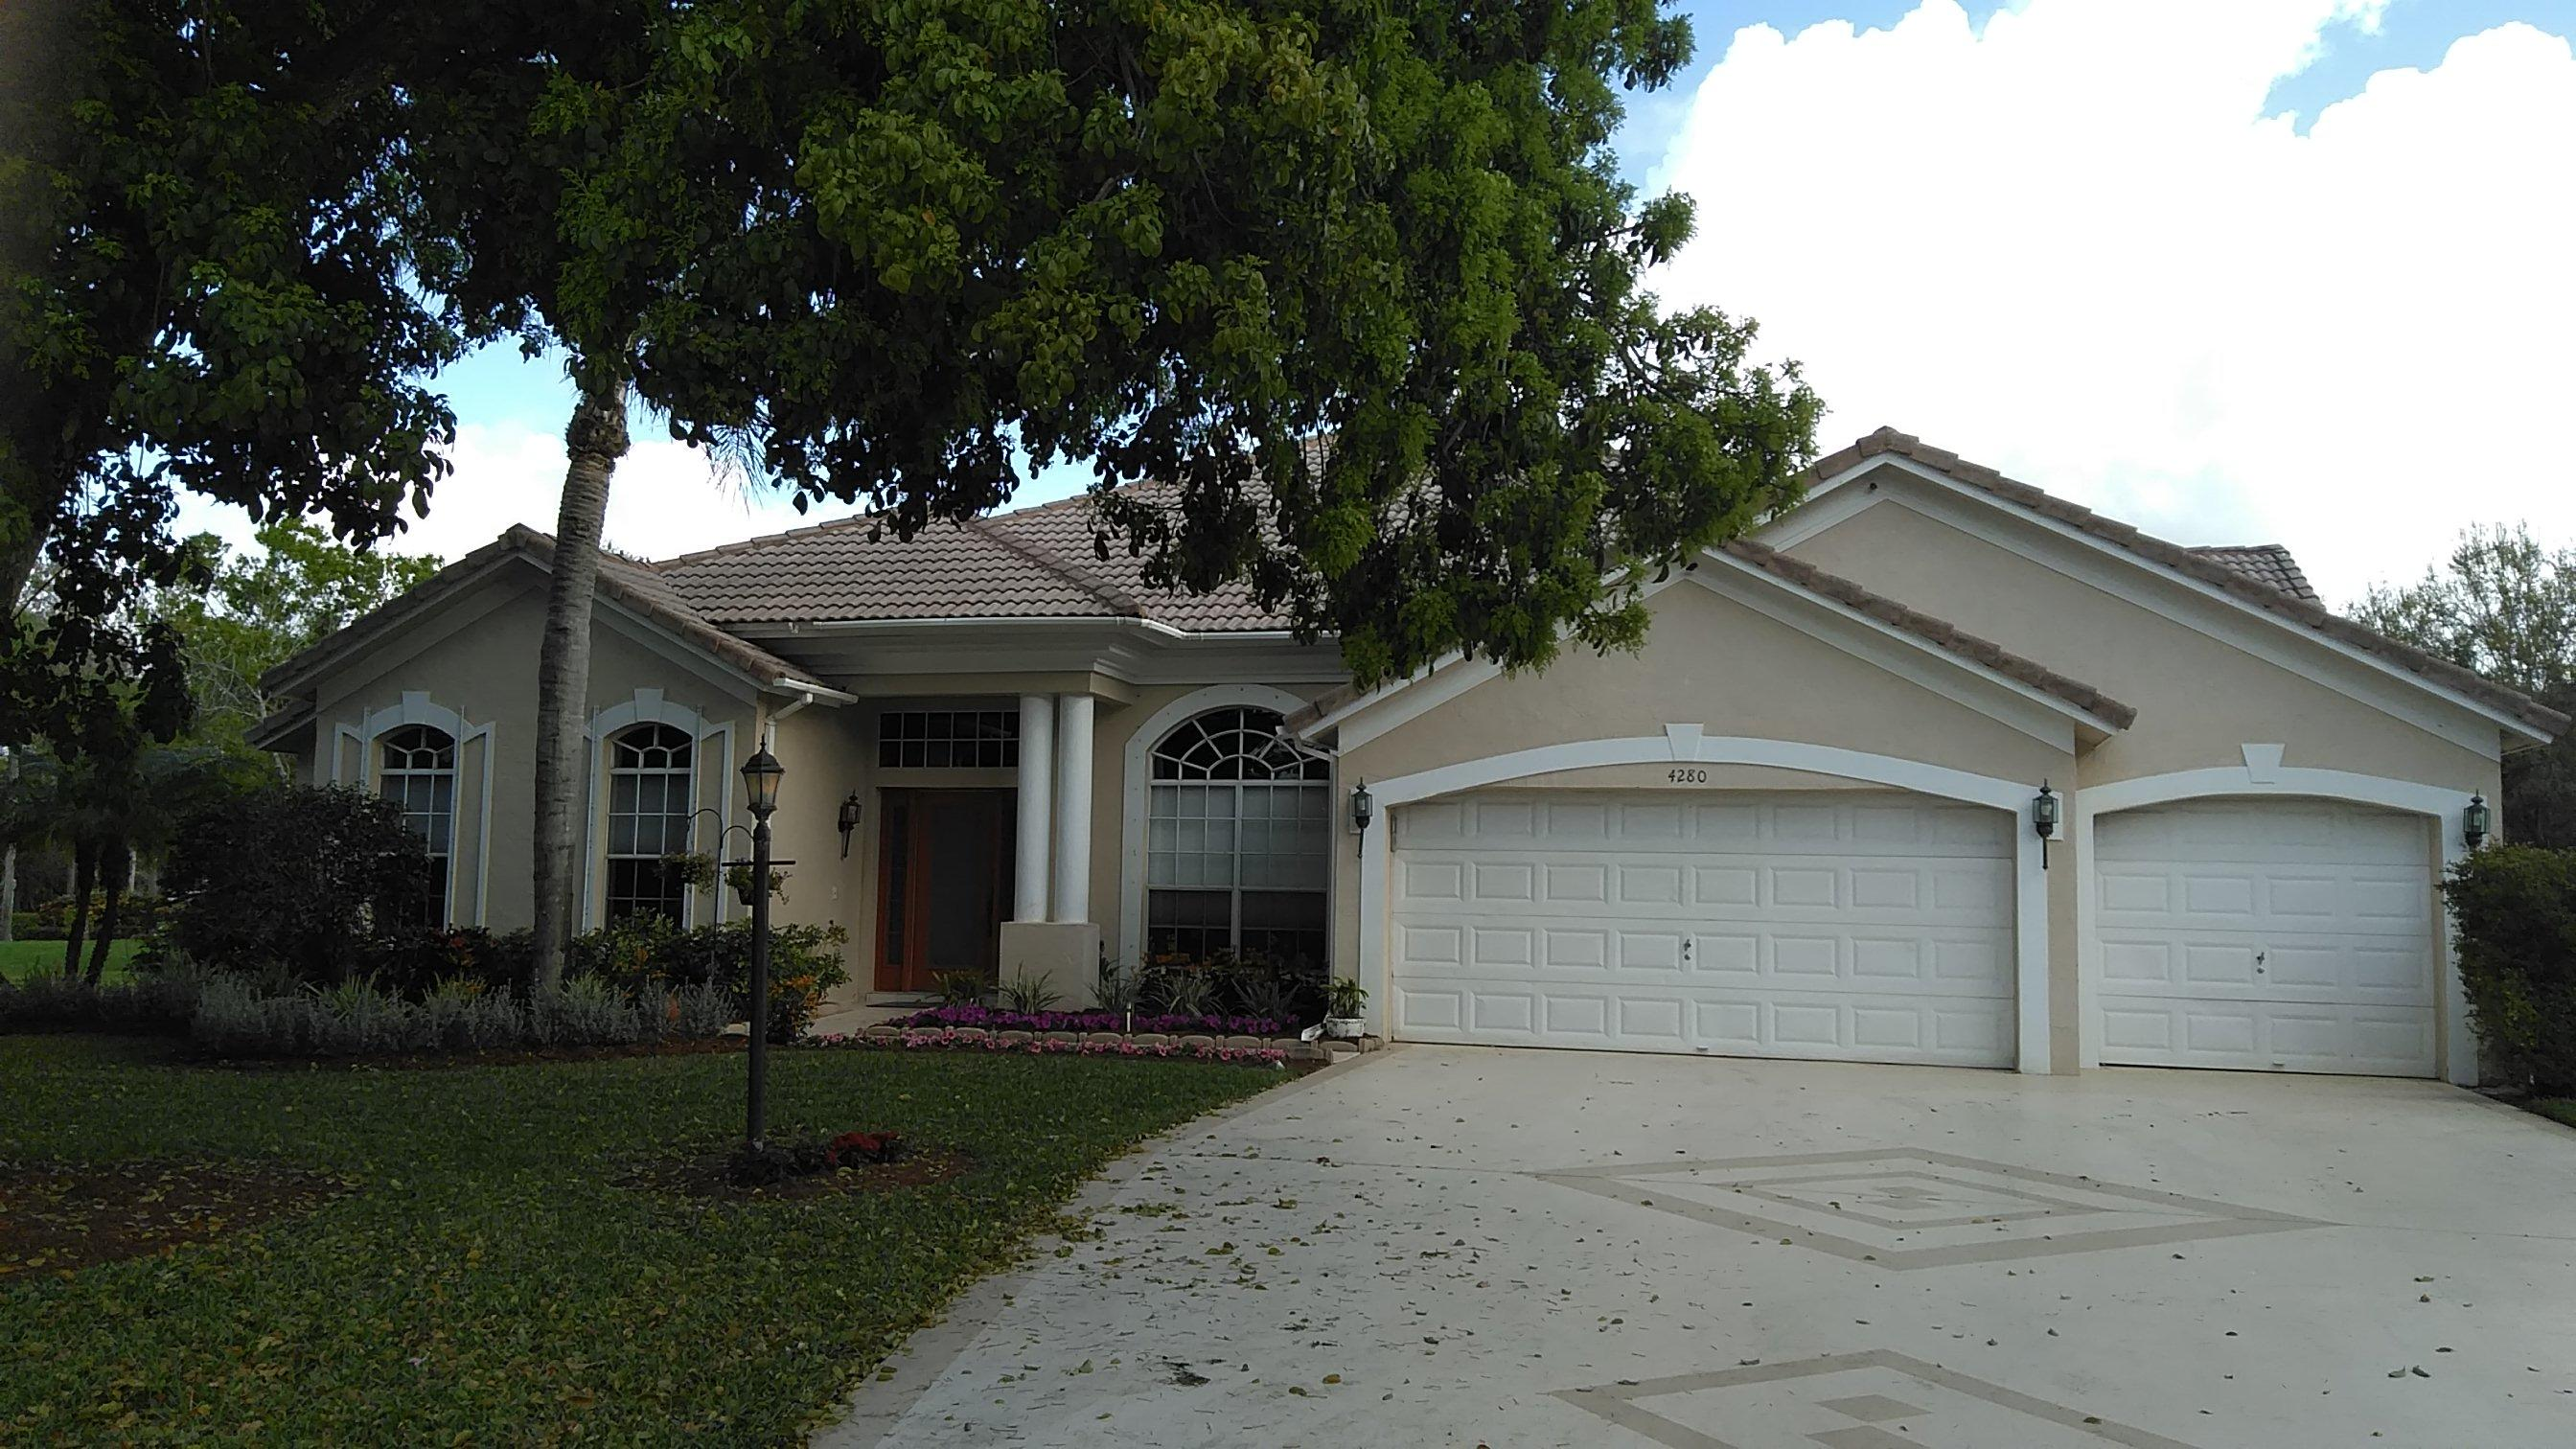 4280 Hunting Trail, Lake Worth, Florida 33467, 5 Bedrooms Bedrooms, ,3 BathroomsBathrooms,Single Family,For Sale,LEGEND LAKE ESTATES,Hunting,1,RX-10504967